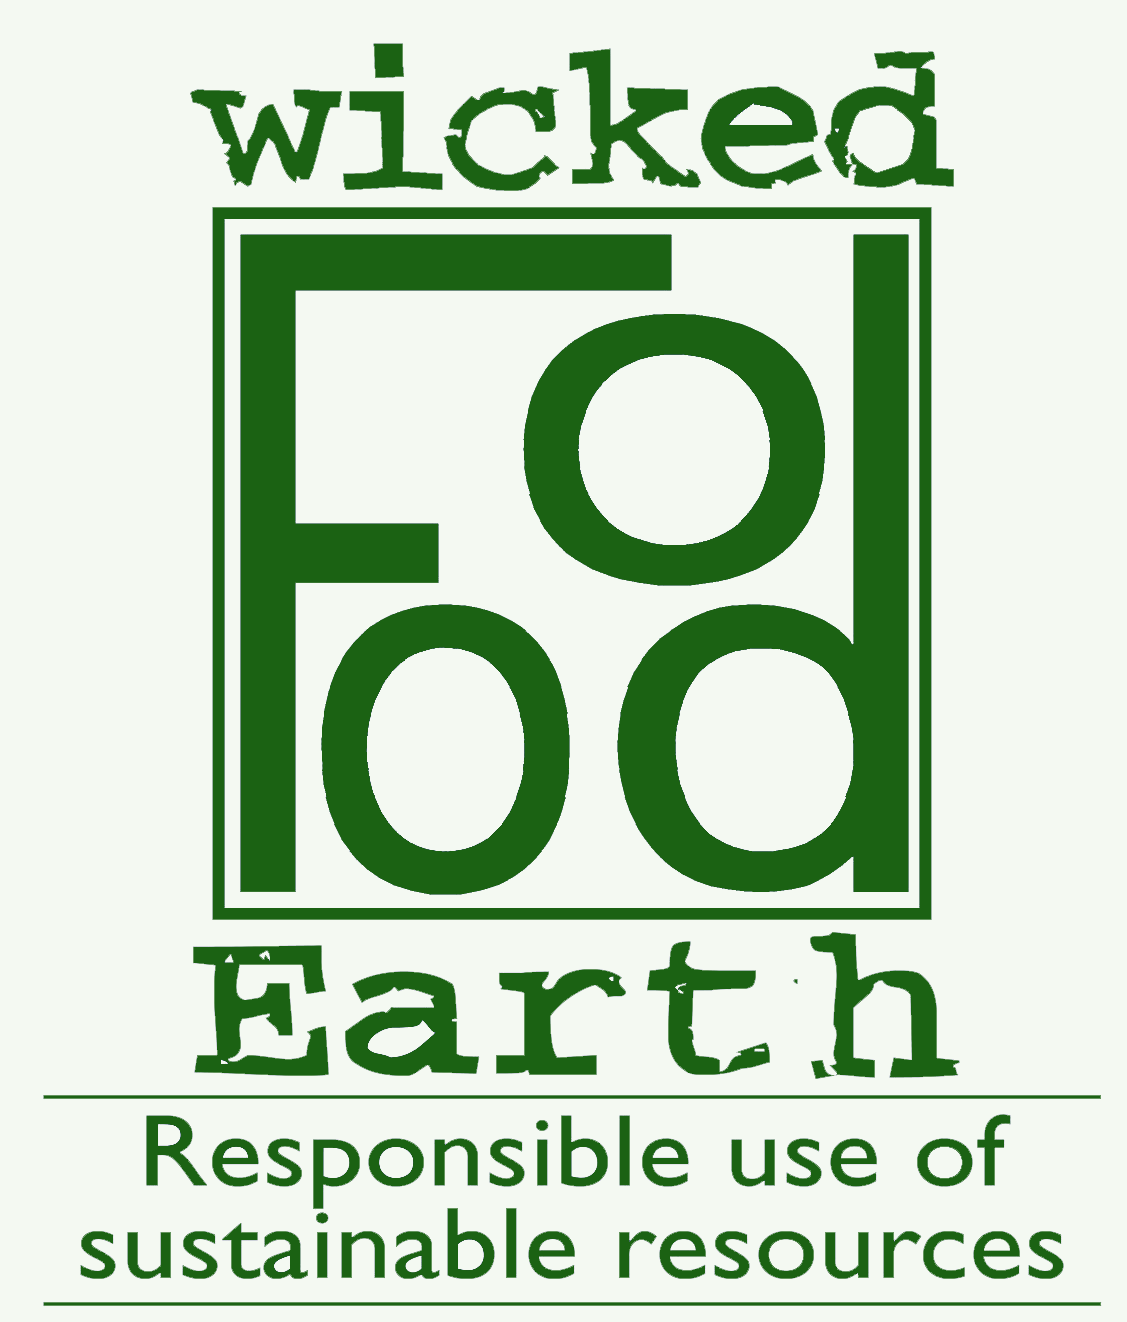 Wickedfood earth